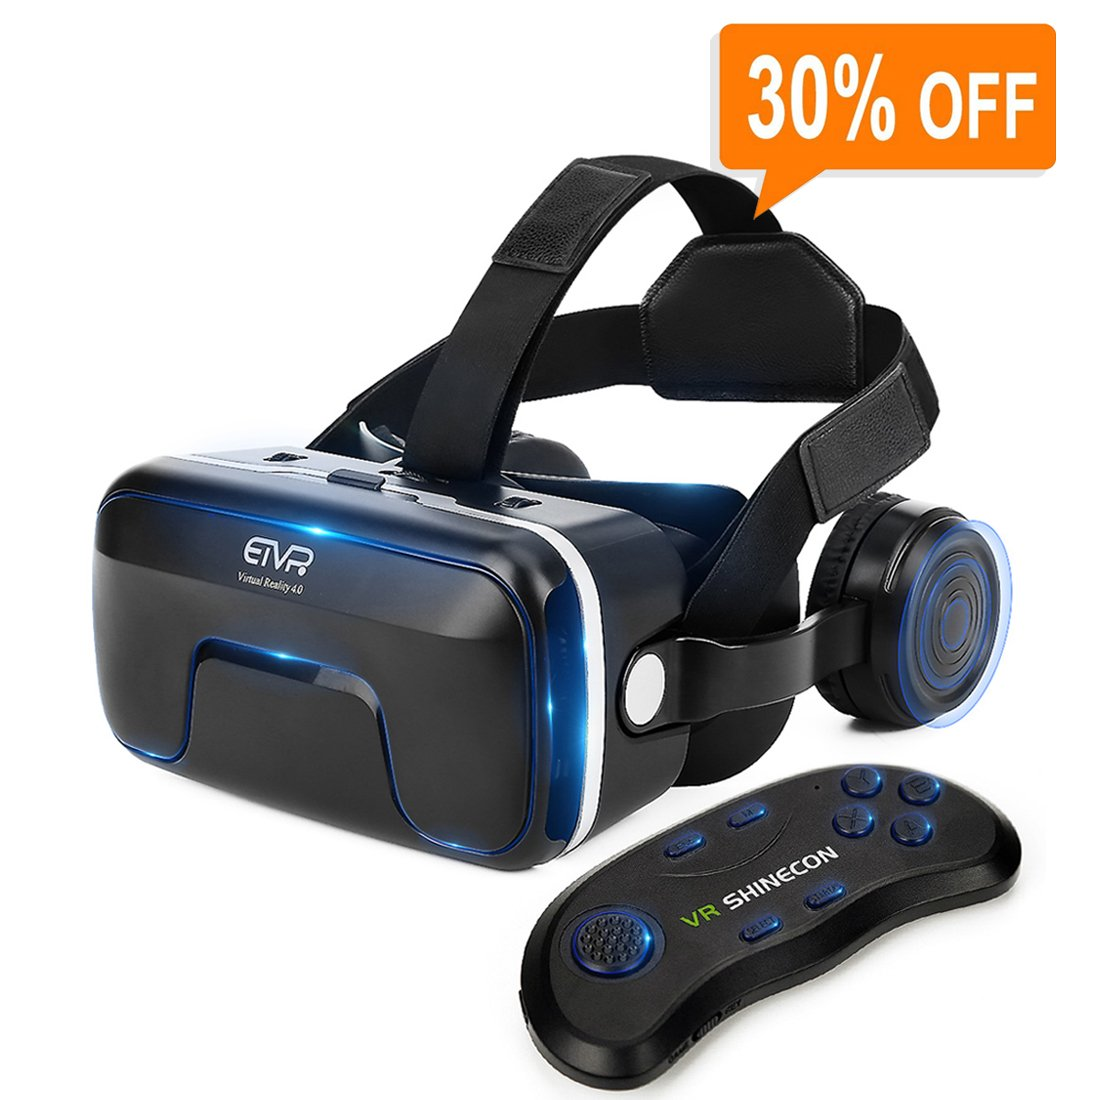 VR Headset with Remote Controller Immersive 3D VR Glasses Virtual Reality Headset with Stereo Headphone and Adjustable Headstrap for 3D Movies & VR Games, Fit for 4.7-6.0 inch IOS/Android Smartphone